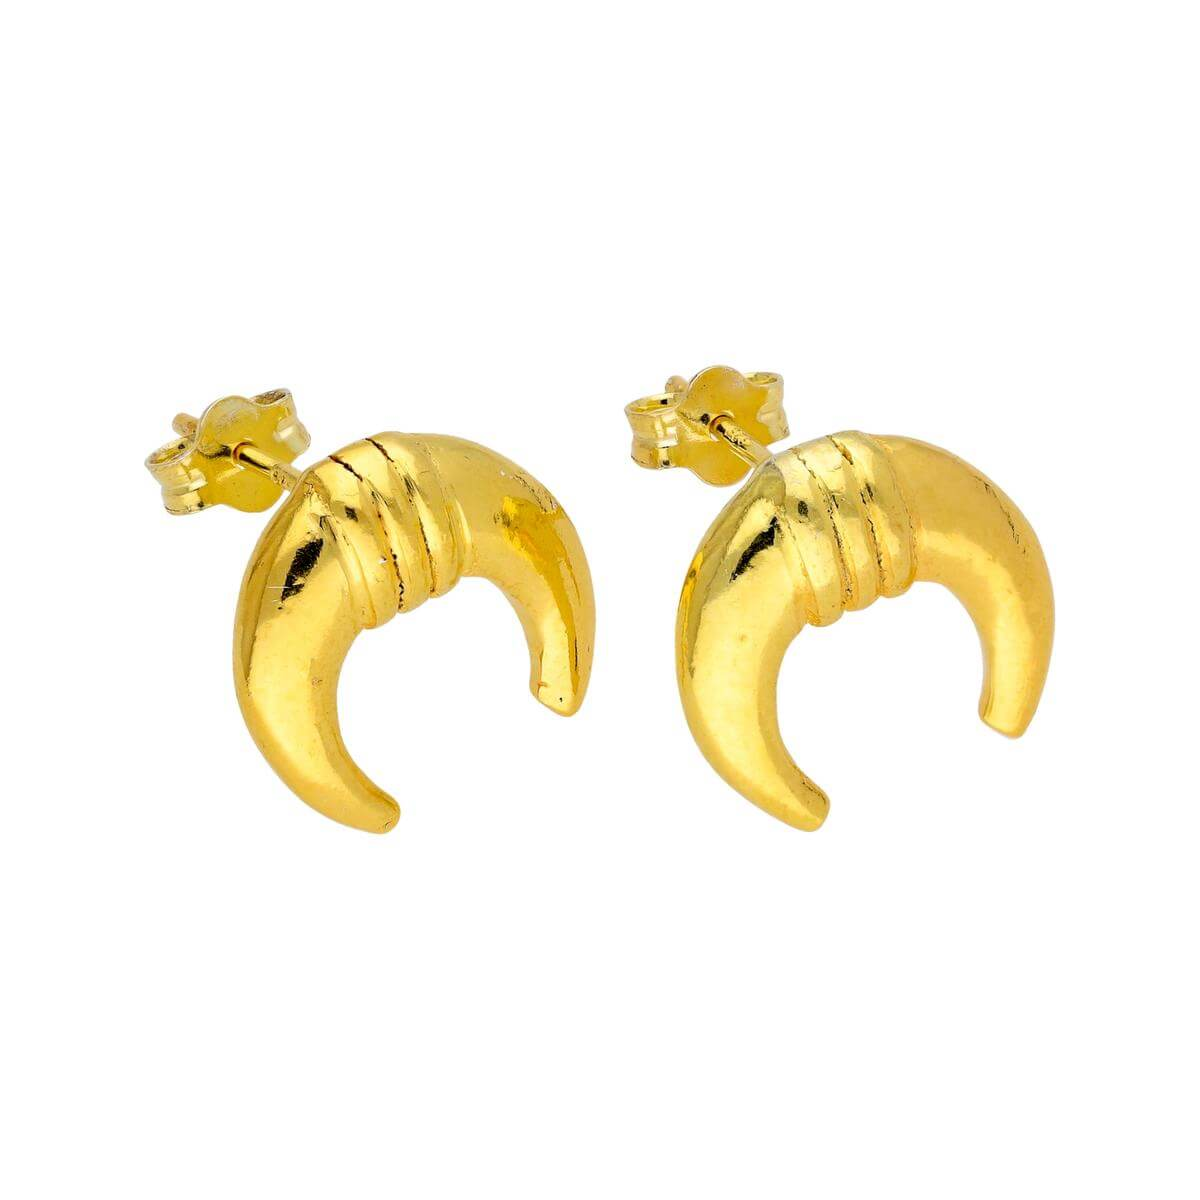 Gold Plated Sterling Silver Horn Line Stud Earrings